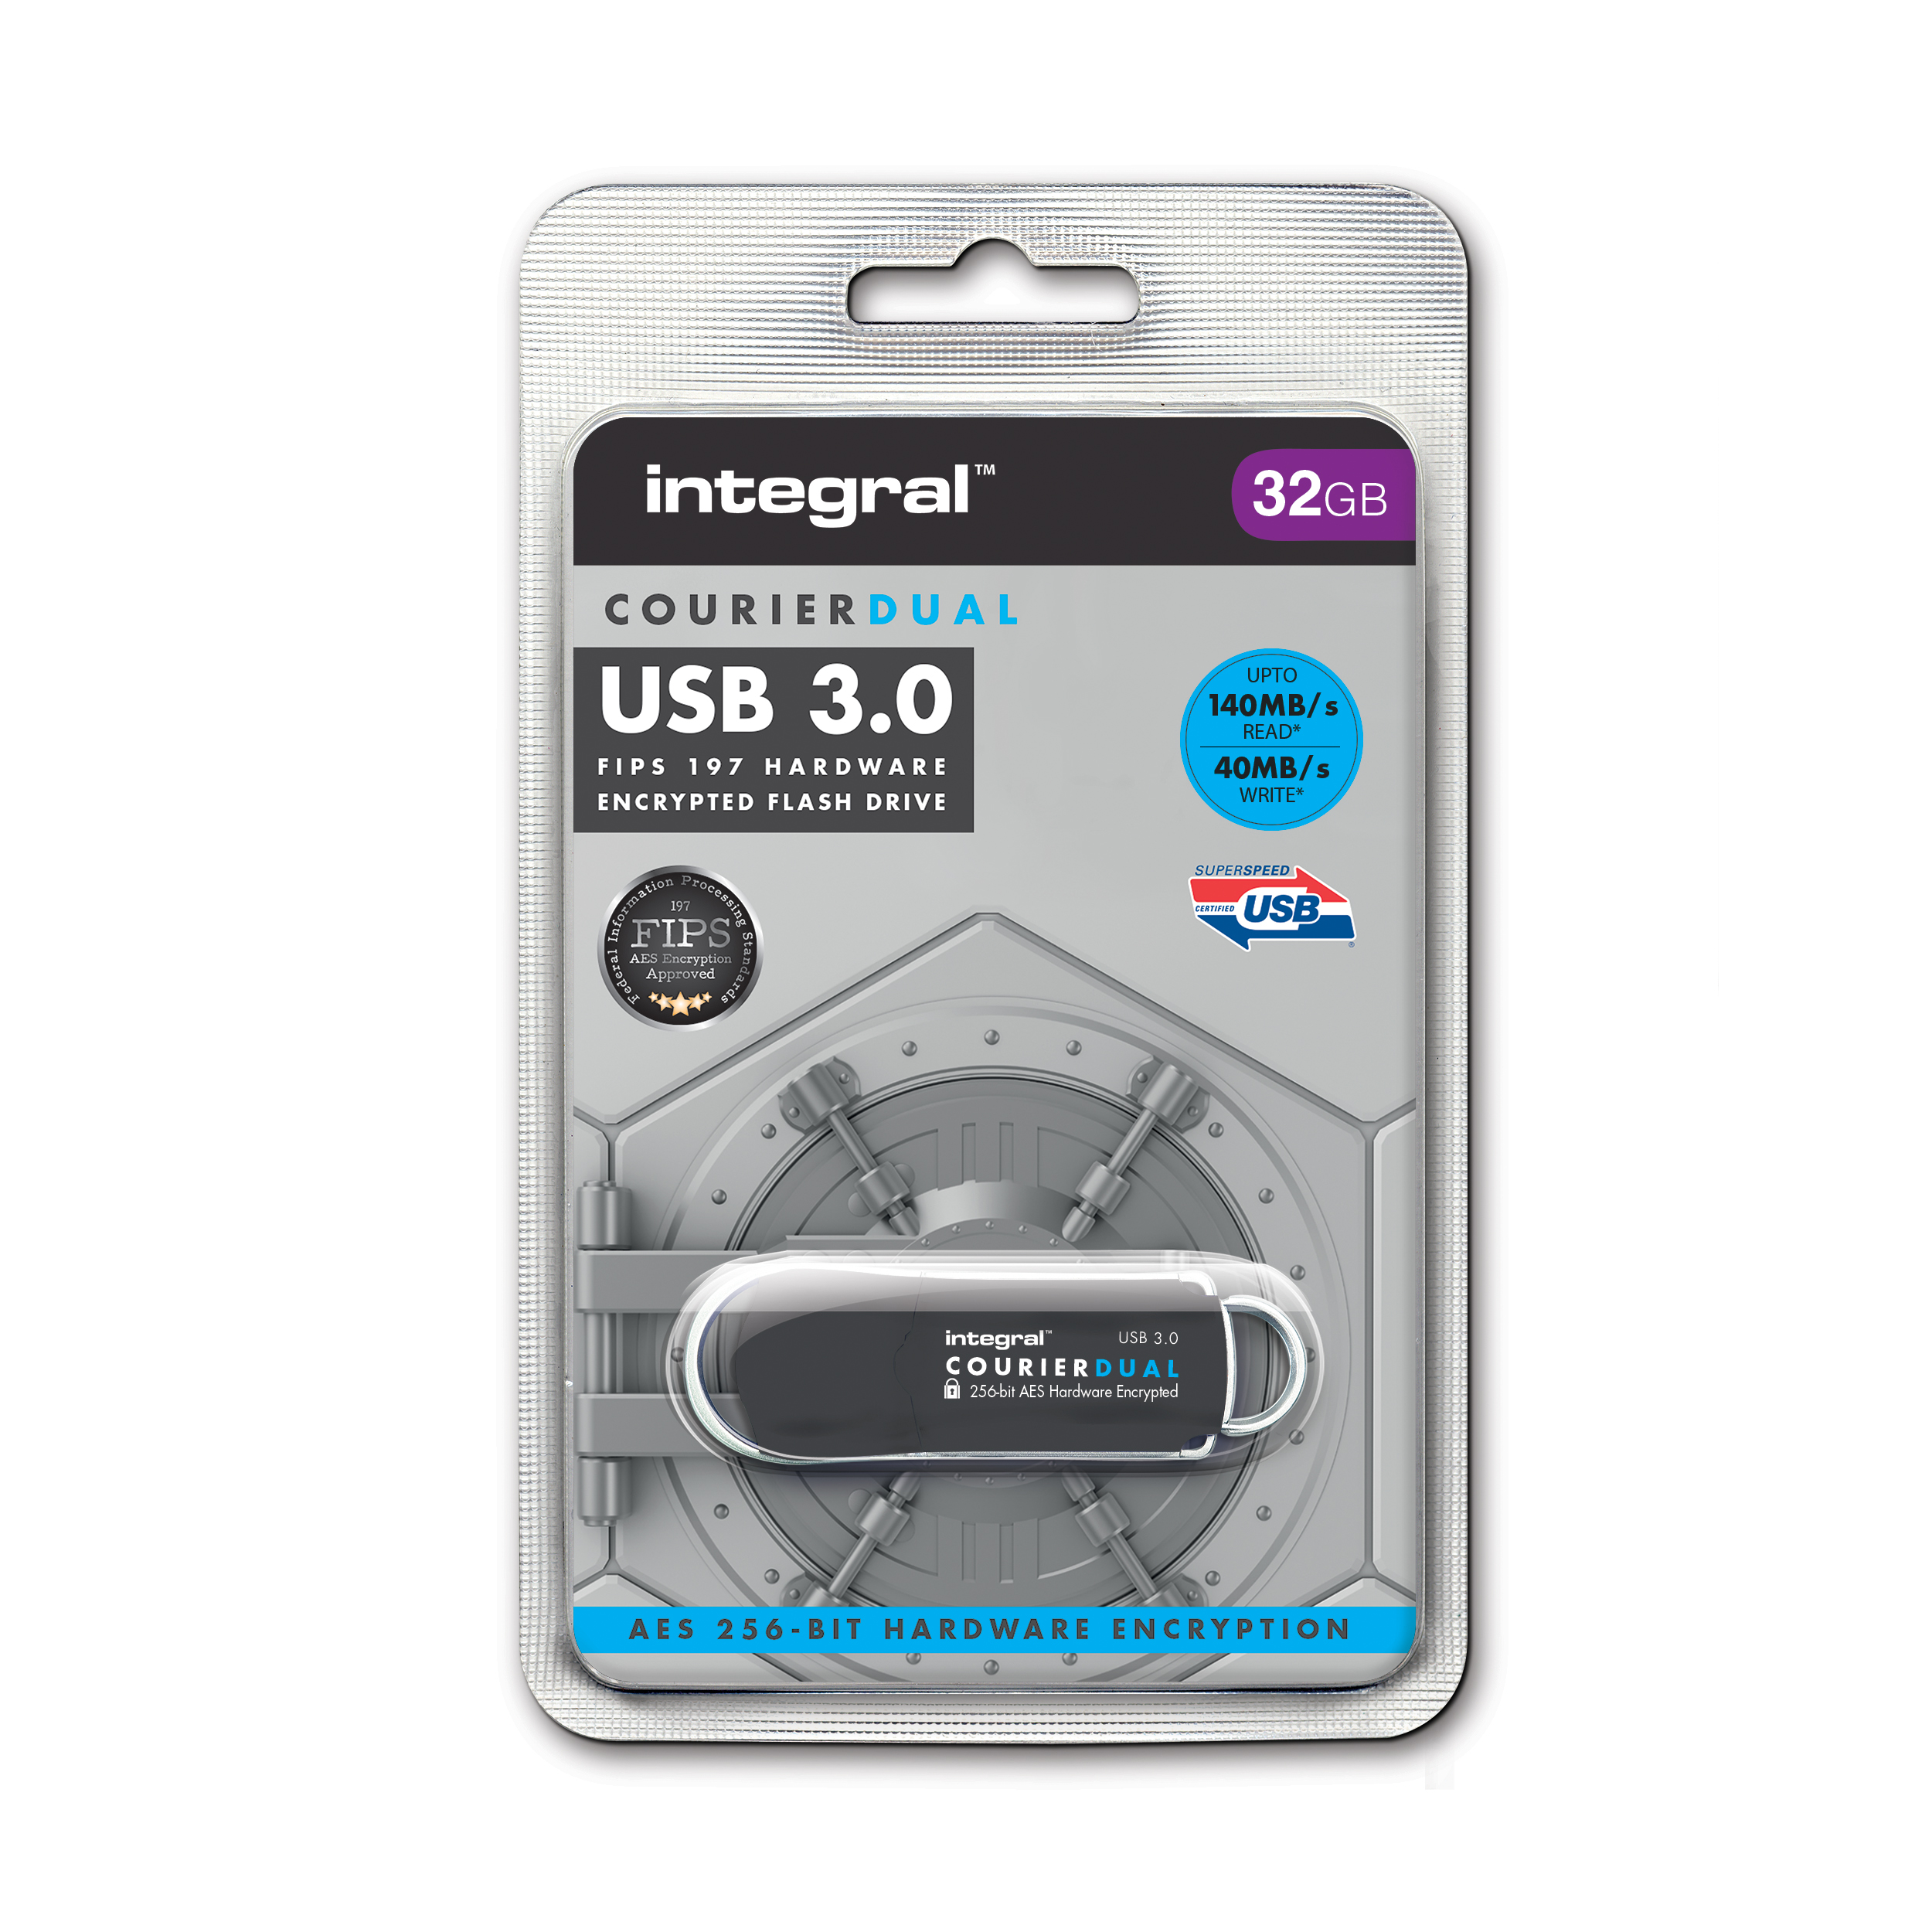 Memory Sticks Integral Courier Dual USB 3.0 FIPS 197 32GB Ref INFD32COUDL3.0-197